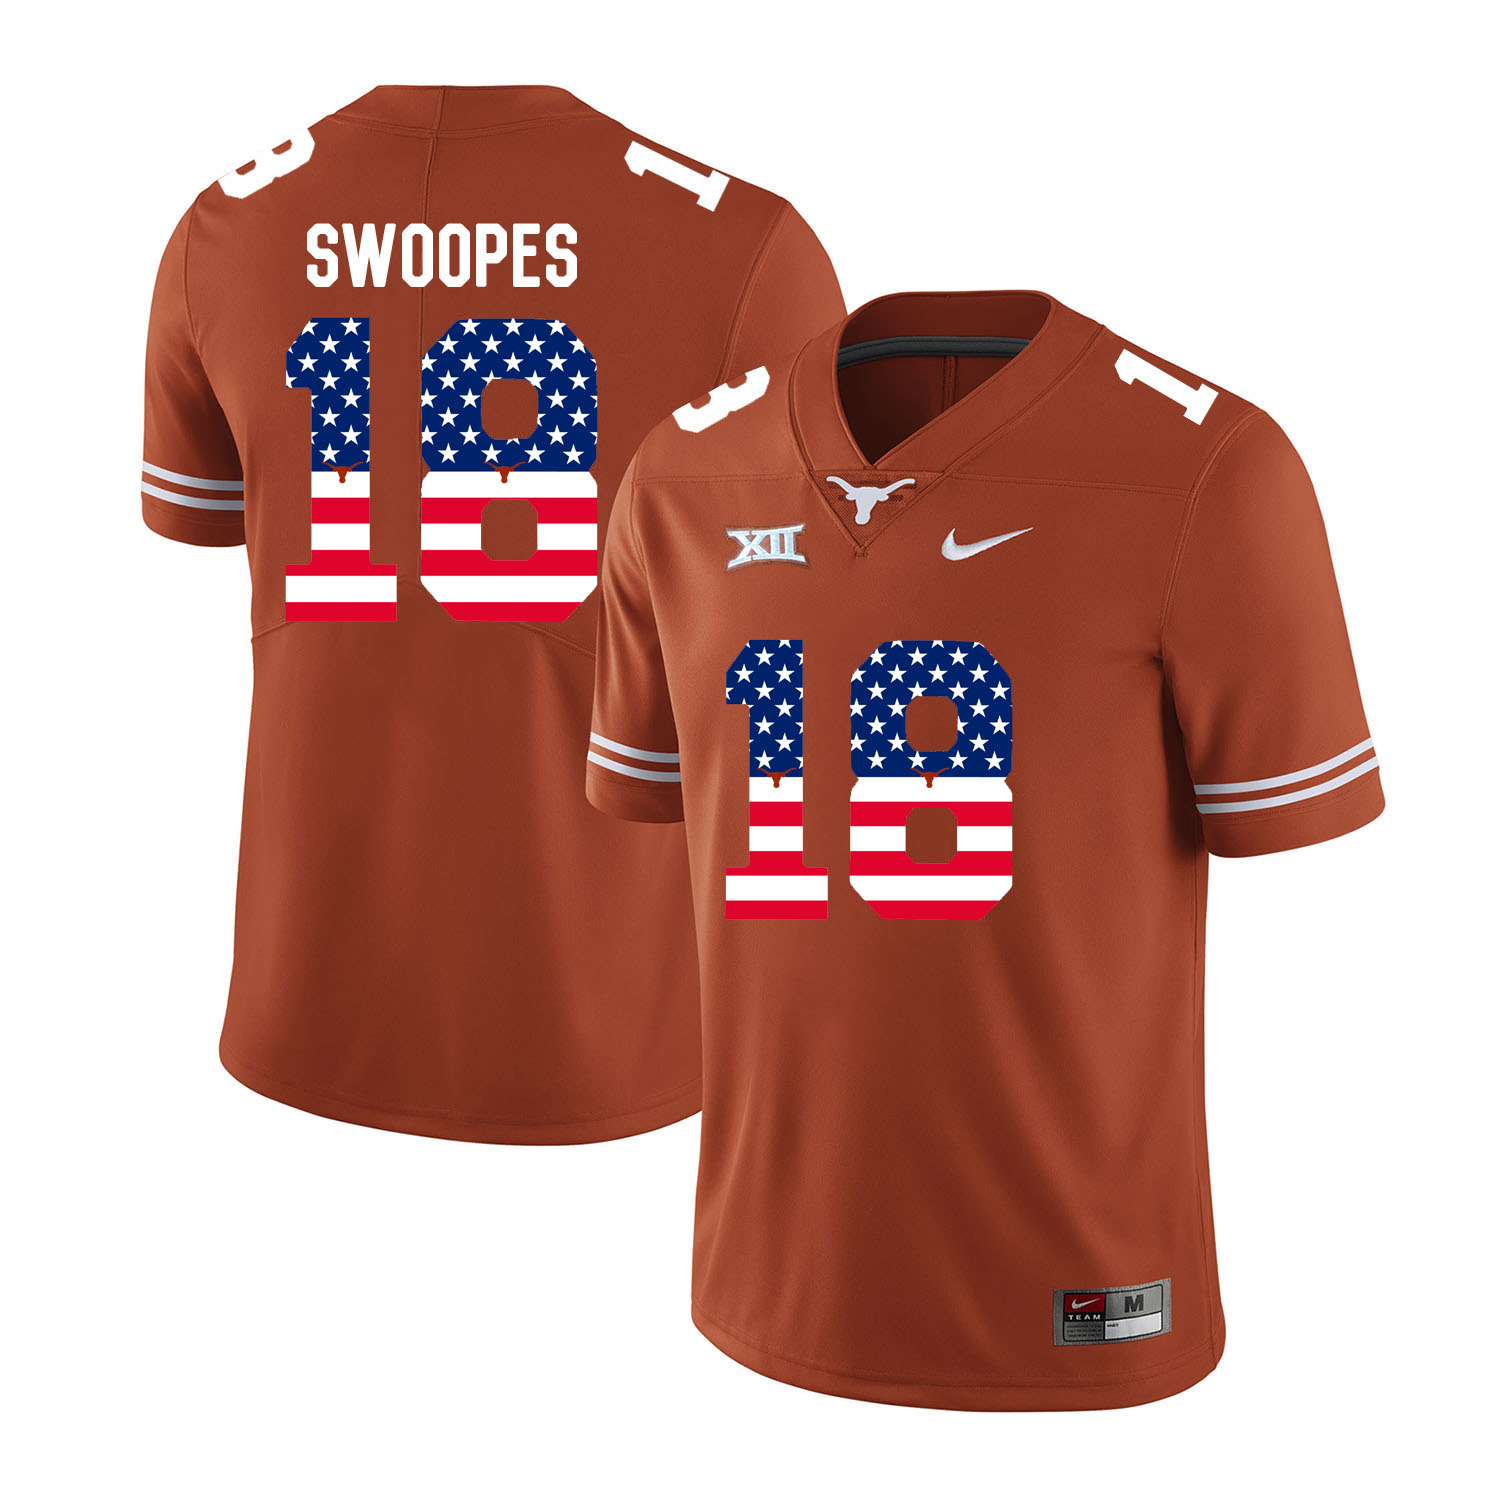 Texas Longhorns 18 Tyrone Swoopes Orange USA Flag Nike College Football Jersey